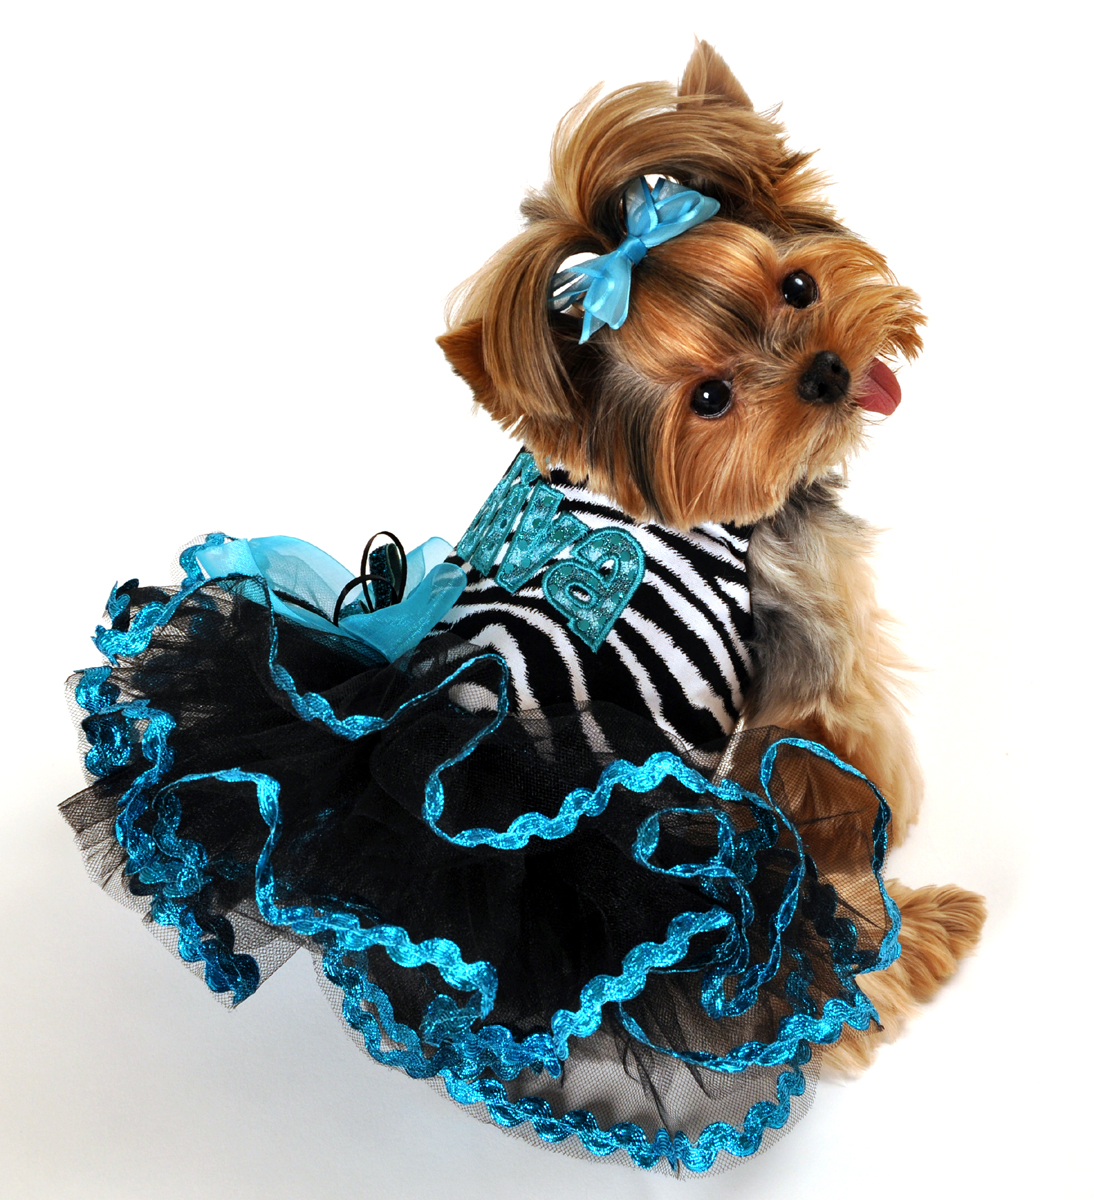 Little Dog Fashion photo - 1